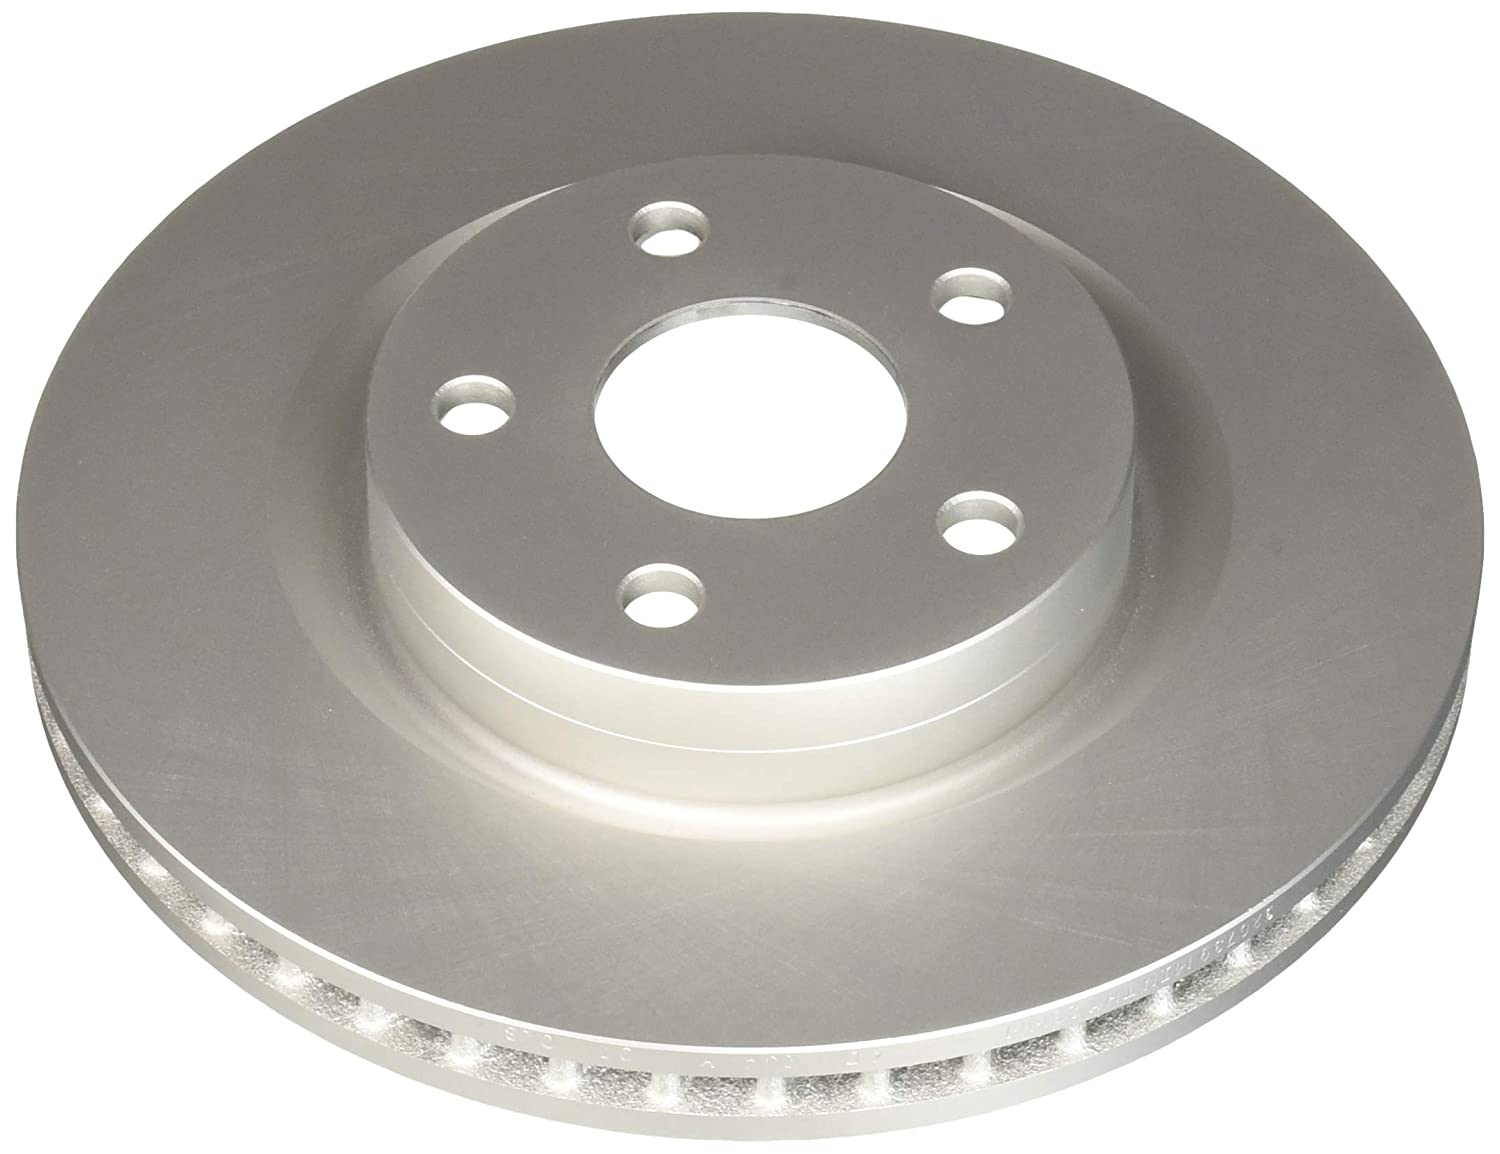 Raybestos 580720FZN Rust Prevention Technology Coated Rotor Brake